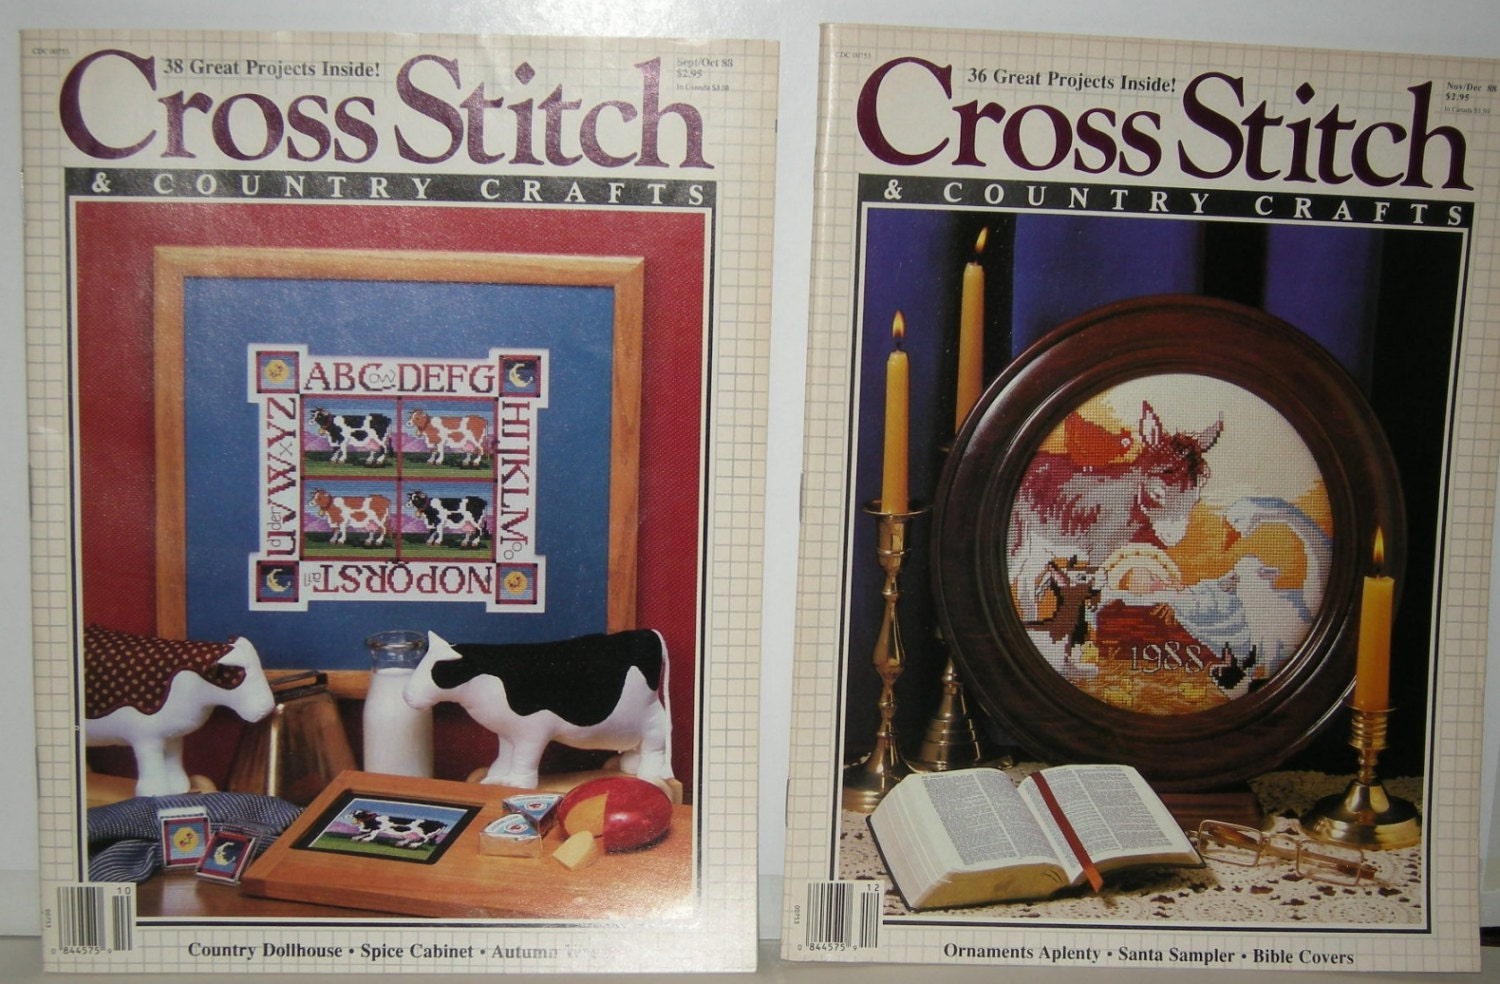 Cross stitch and country crafts magazine back issues -  10 95